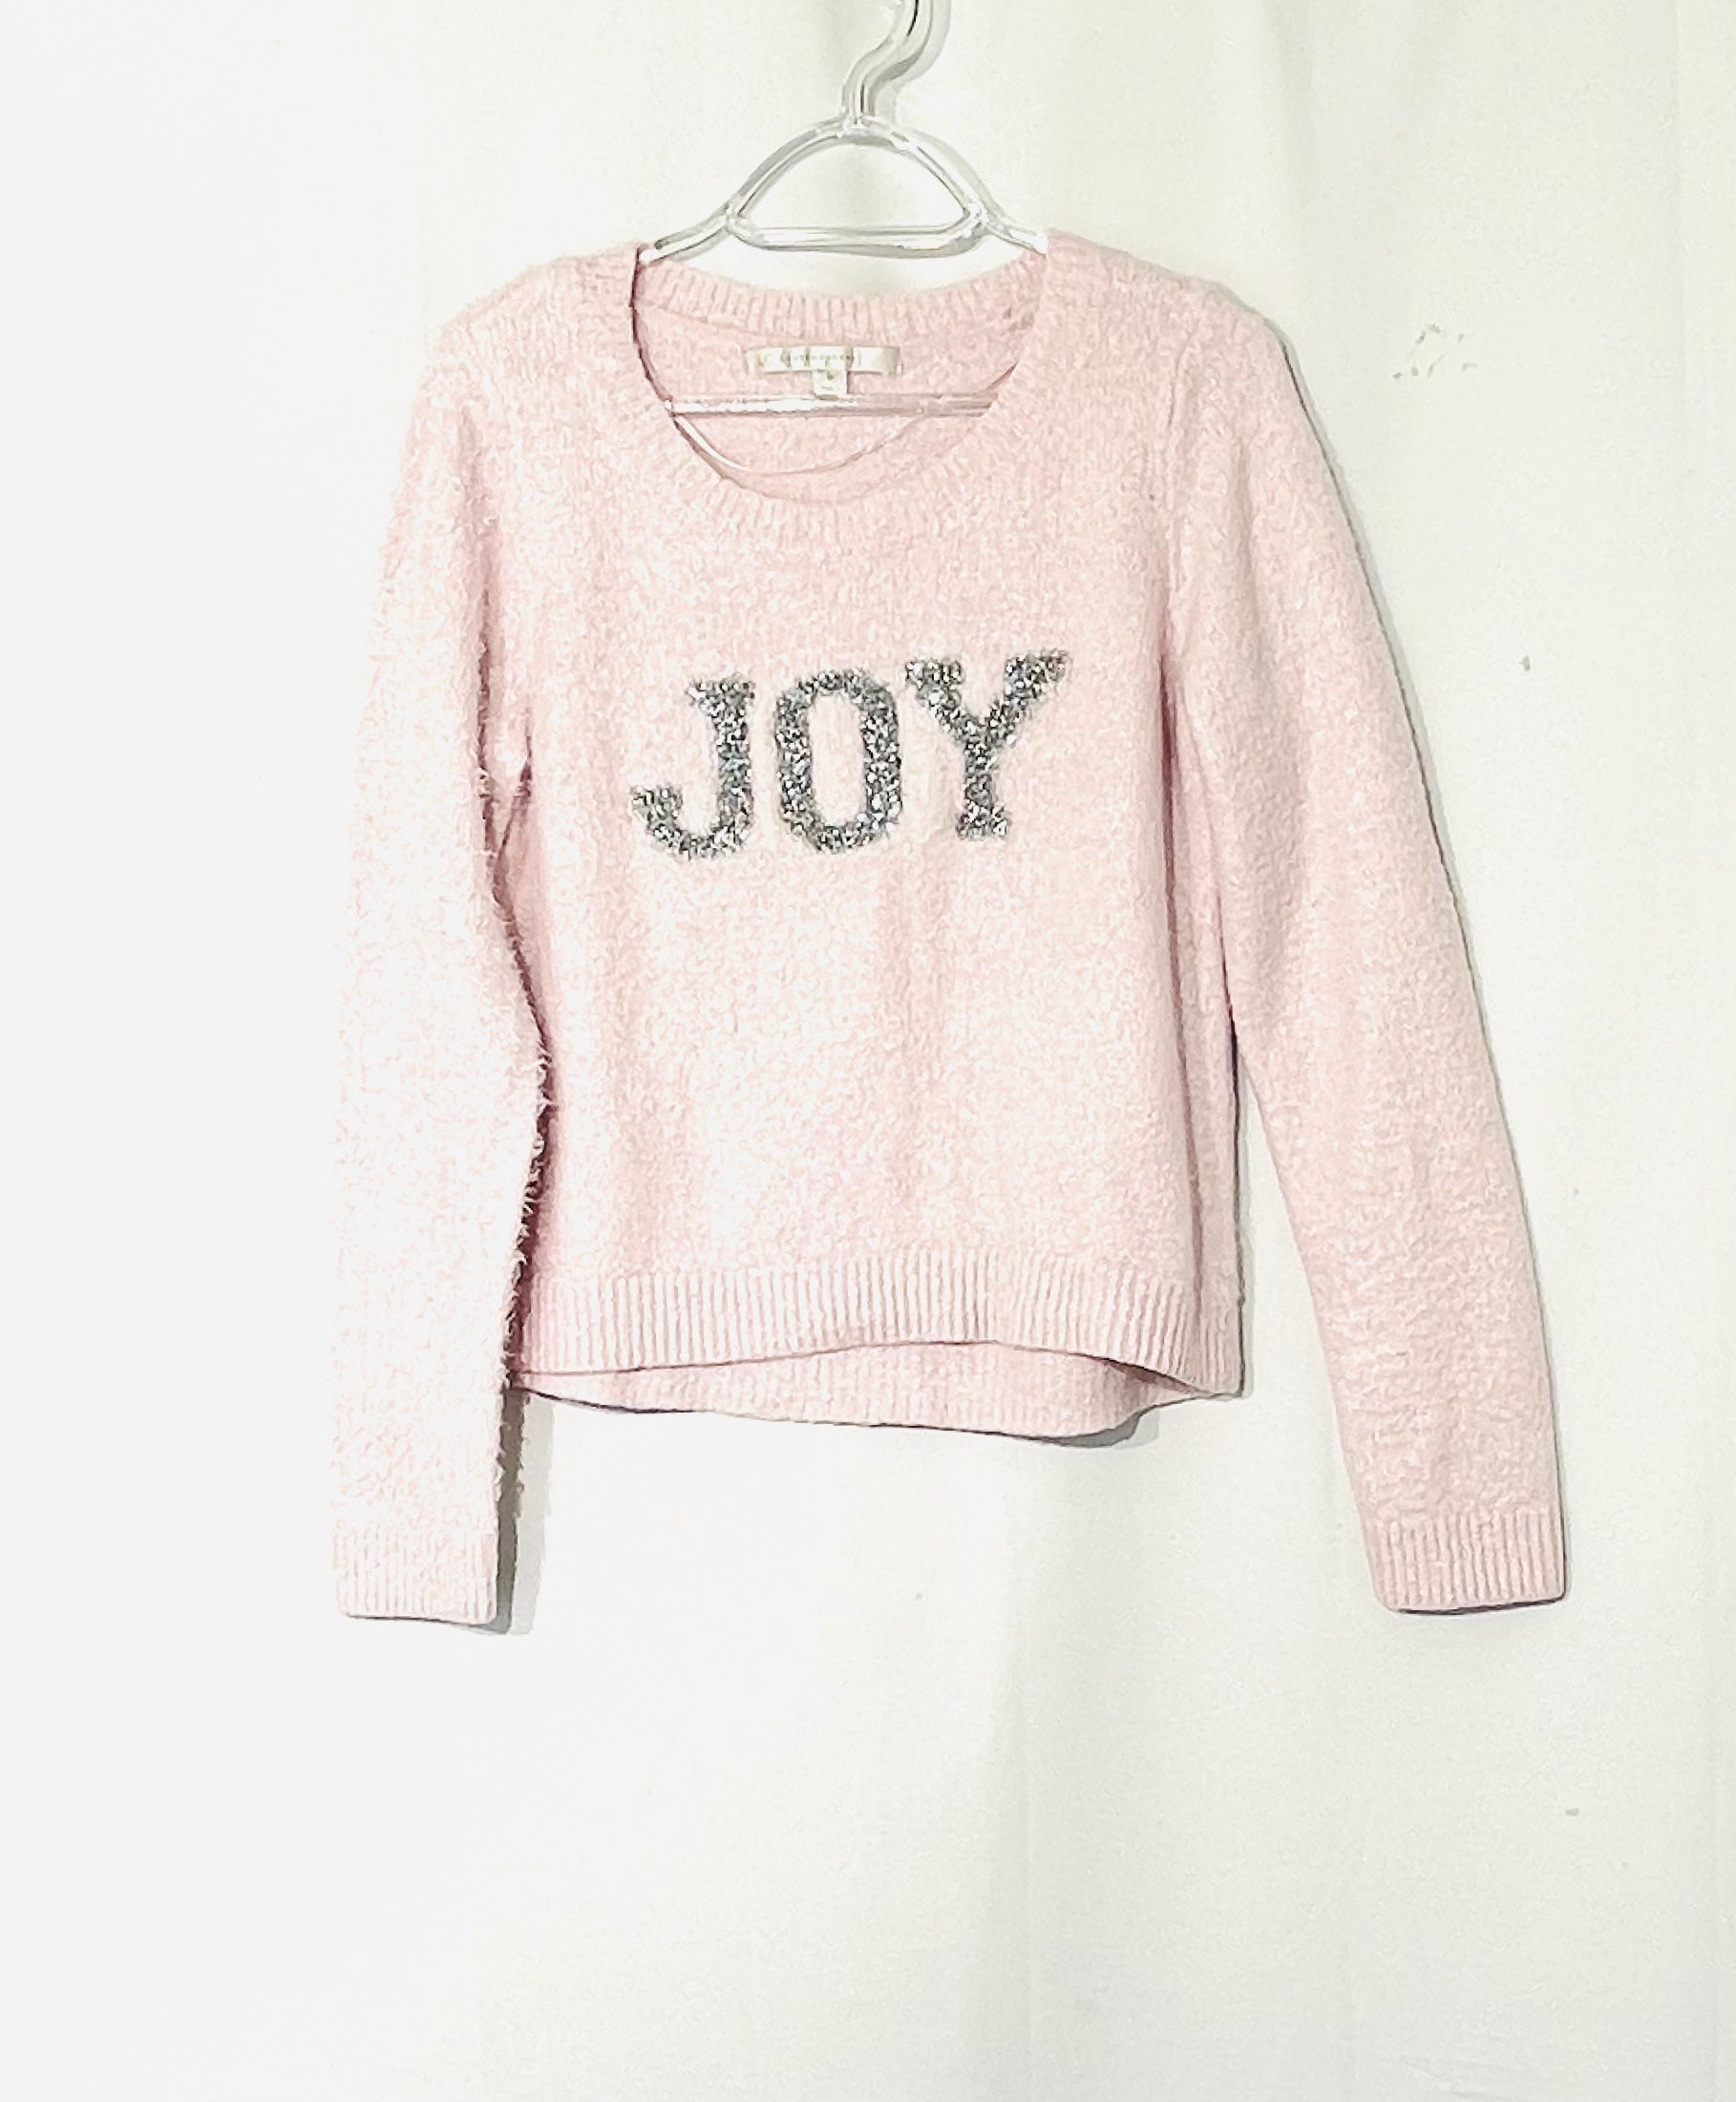 Primary Photo - BRAND: LAUREN CONRAD <BR>STYLE: SWEATER LIGHTWEIGHT <BR>COLOR: LIGHT LILAC<BR>SIZE: M <BR>SKU: 262-26241-44600